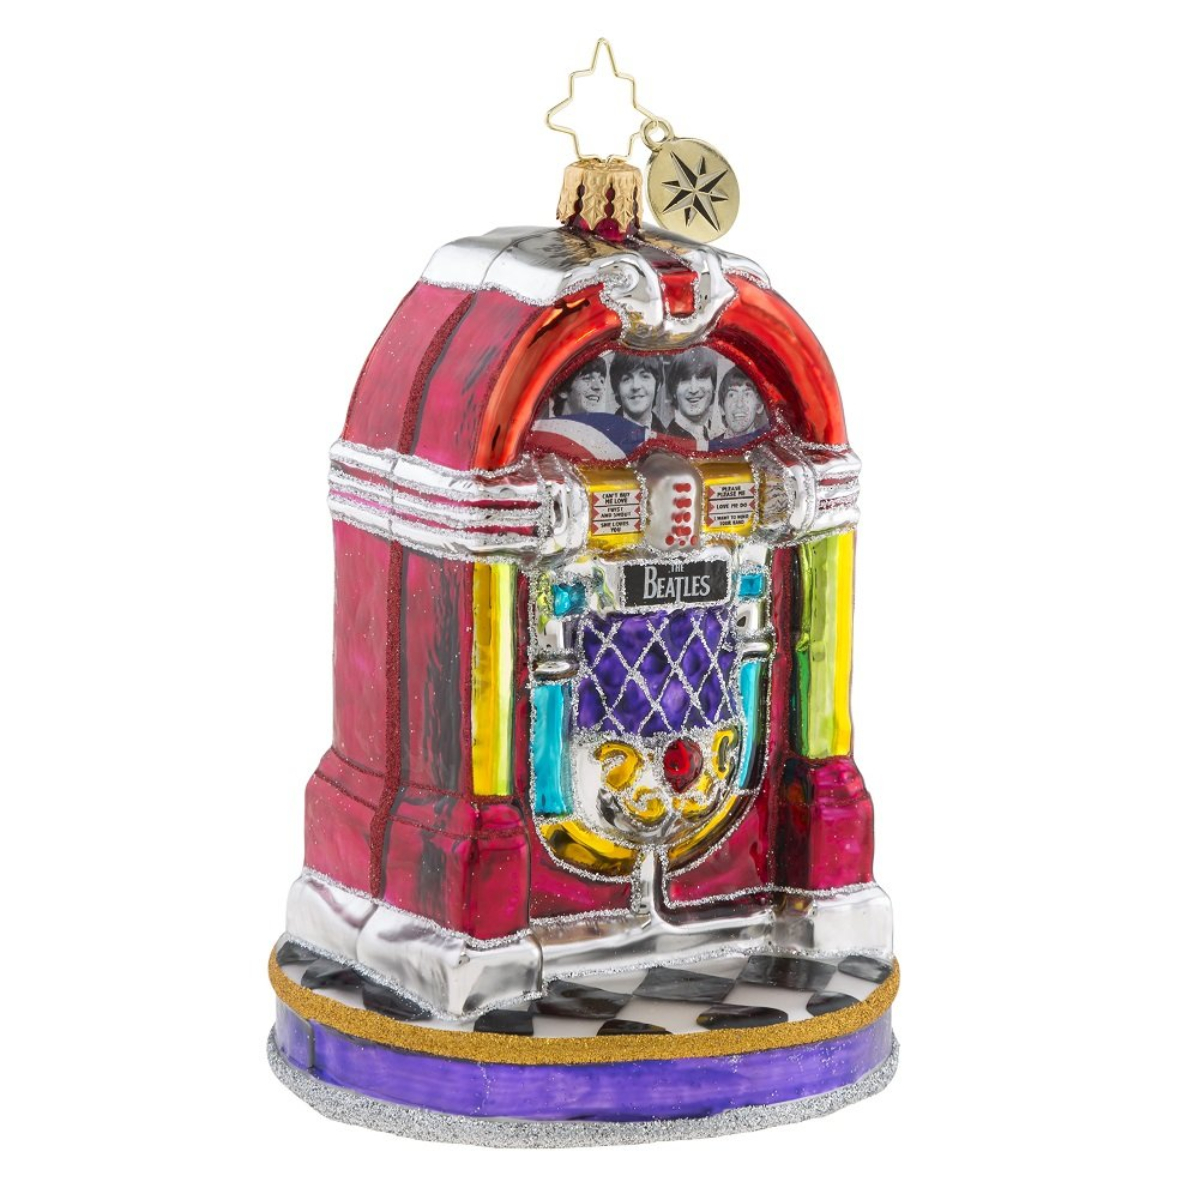 Twist and Shout! Ornament